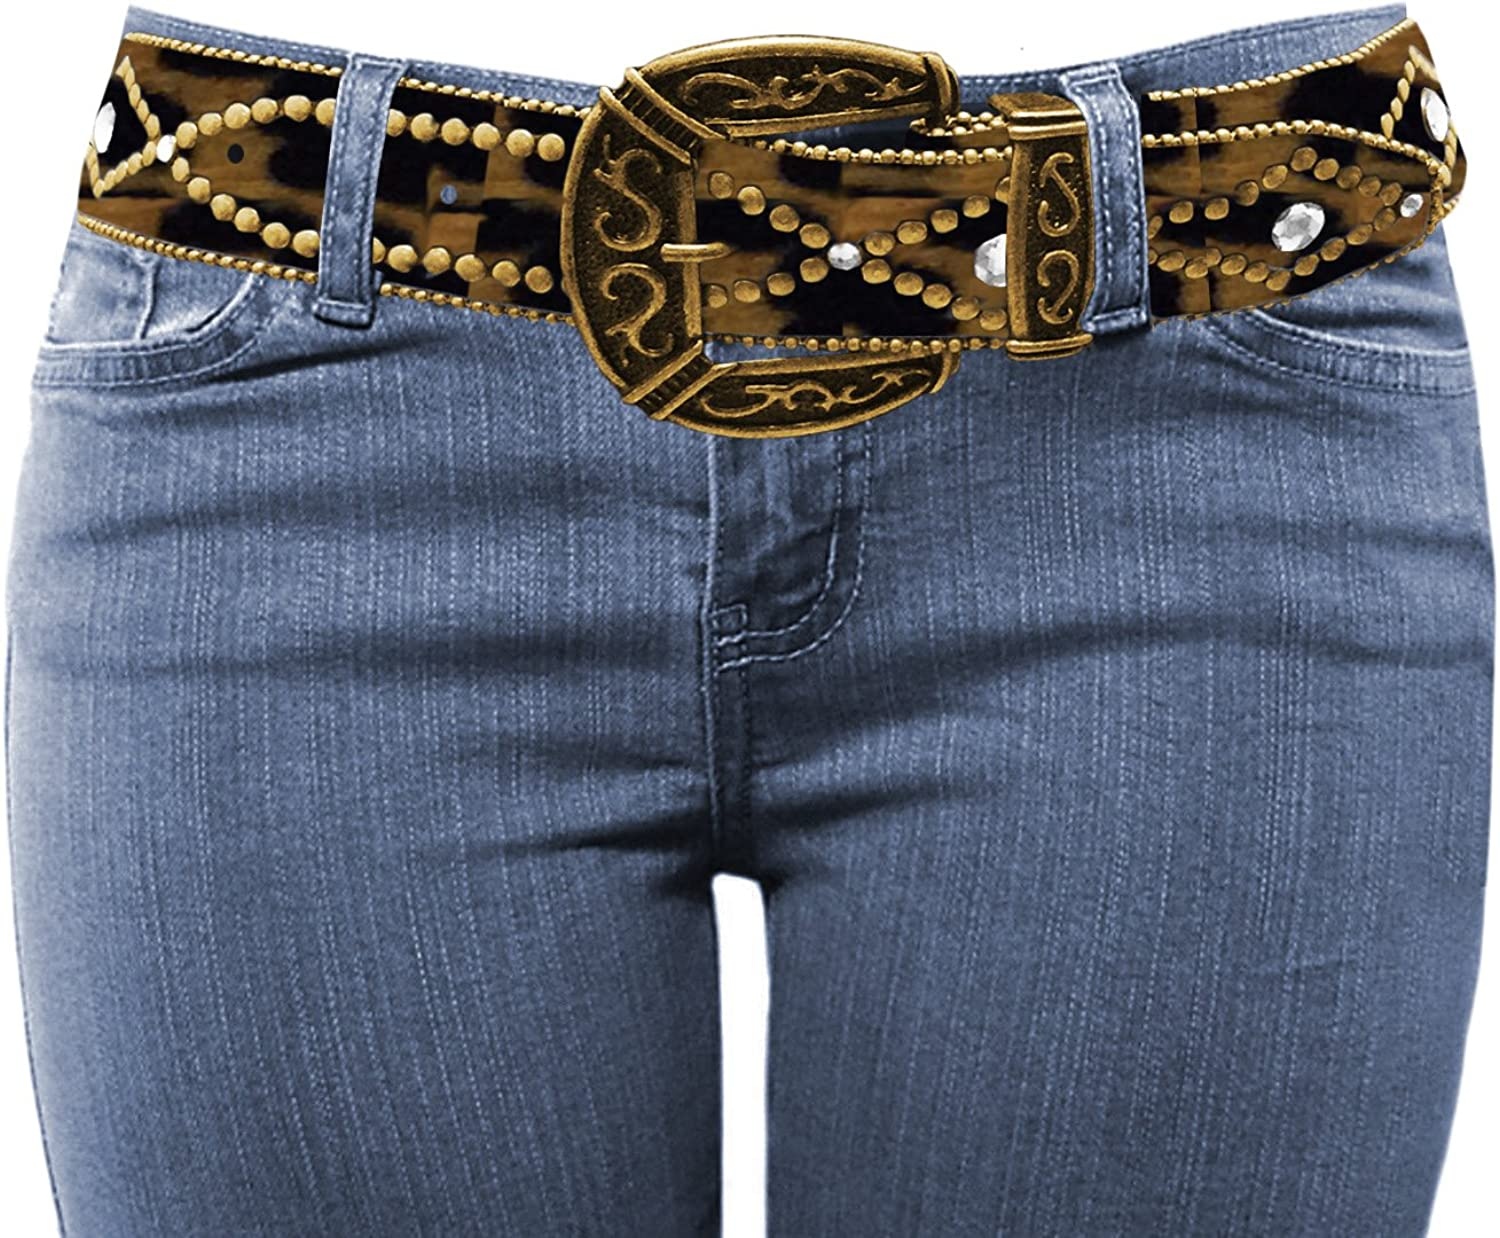 LUNA Western Cowgirl Charm Bling Belt Series - Rhinestone Studded (Various Colors / 2 Sizes)